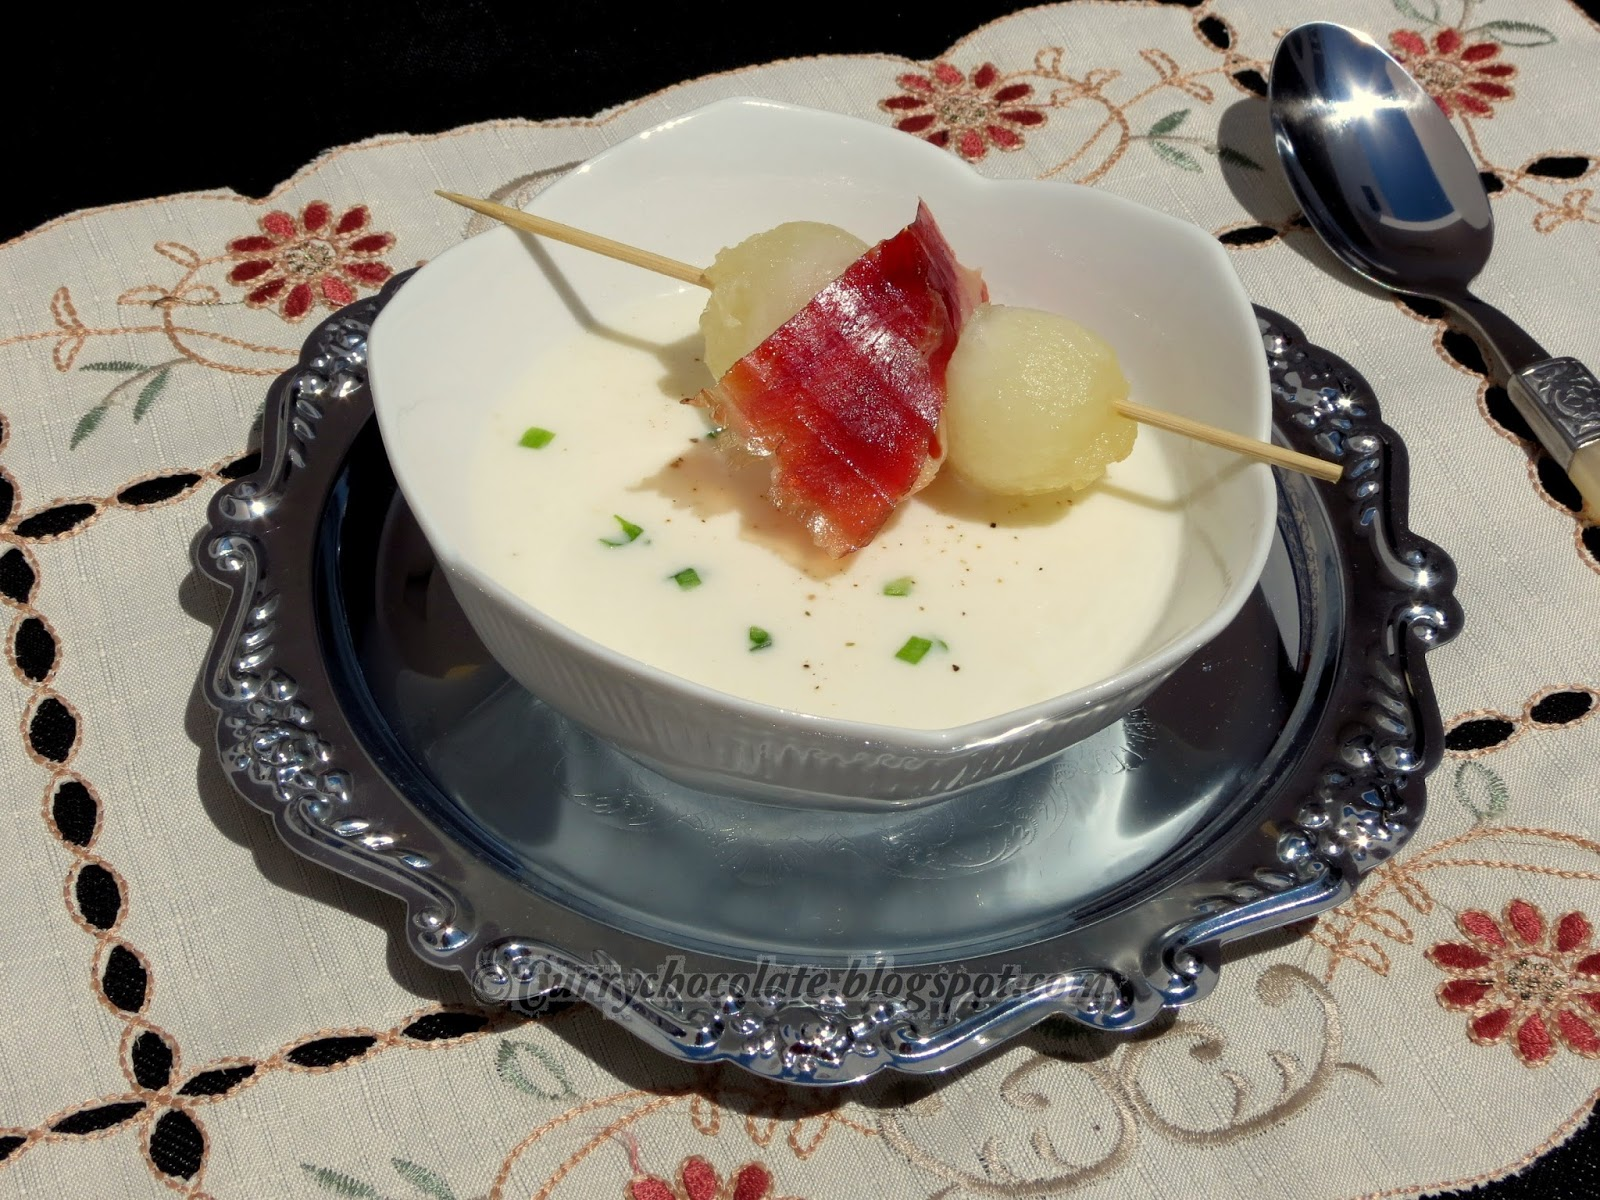 "Sopa fría de melón y yogur - Chilled melon and yogurt soup  ""Sopeao"""